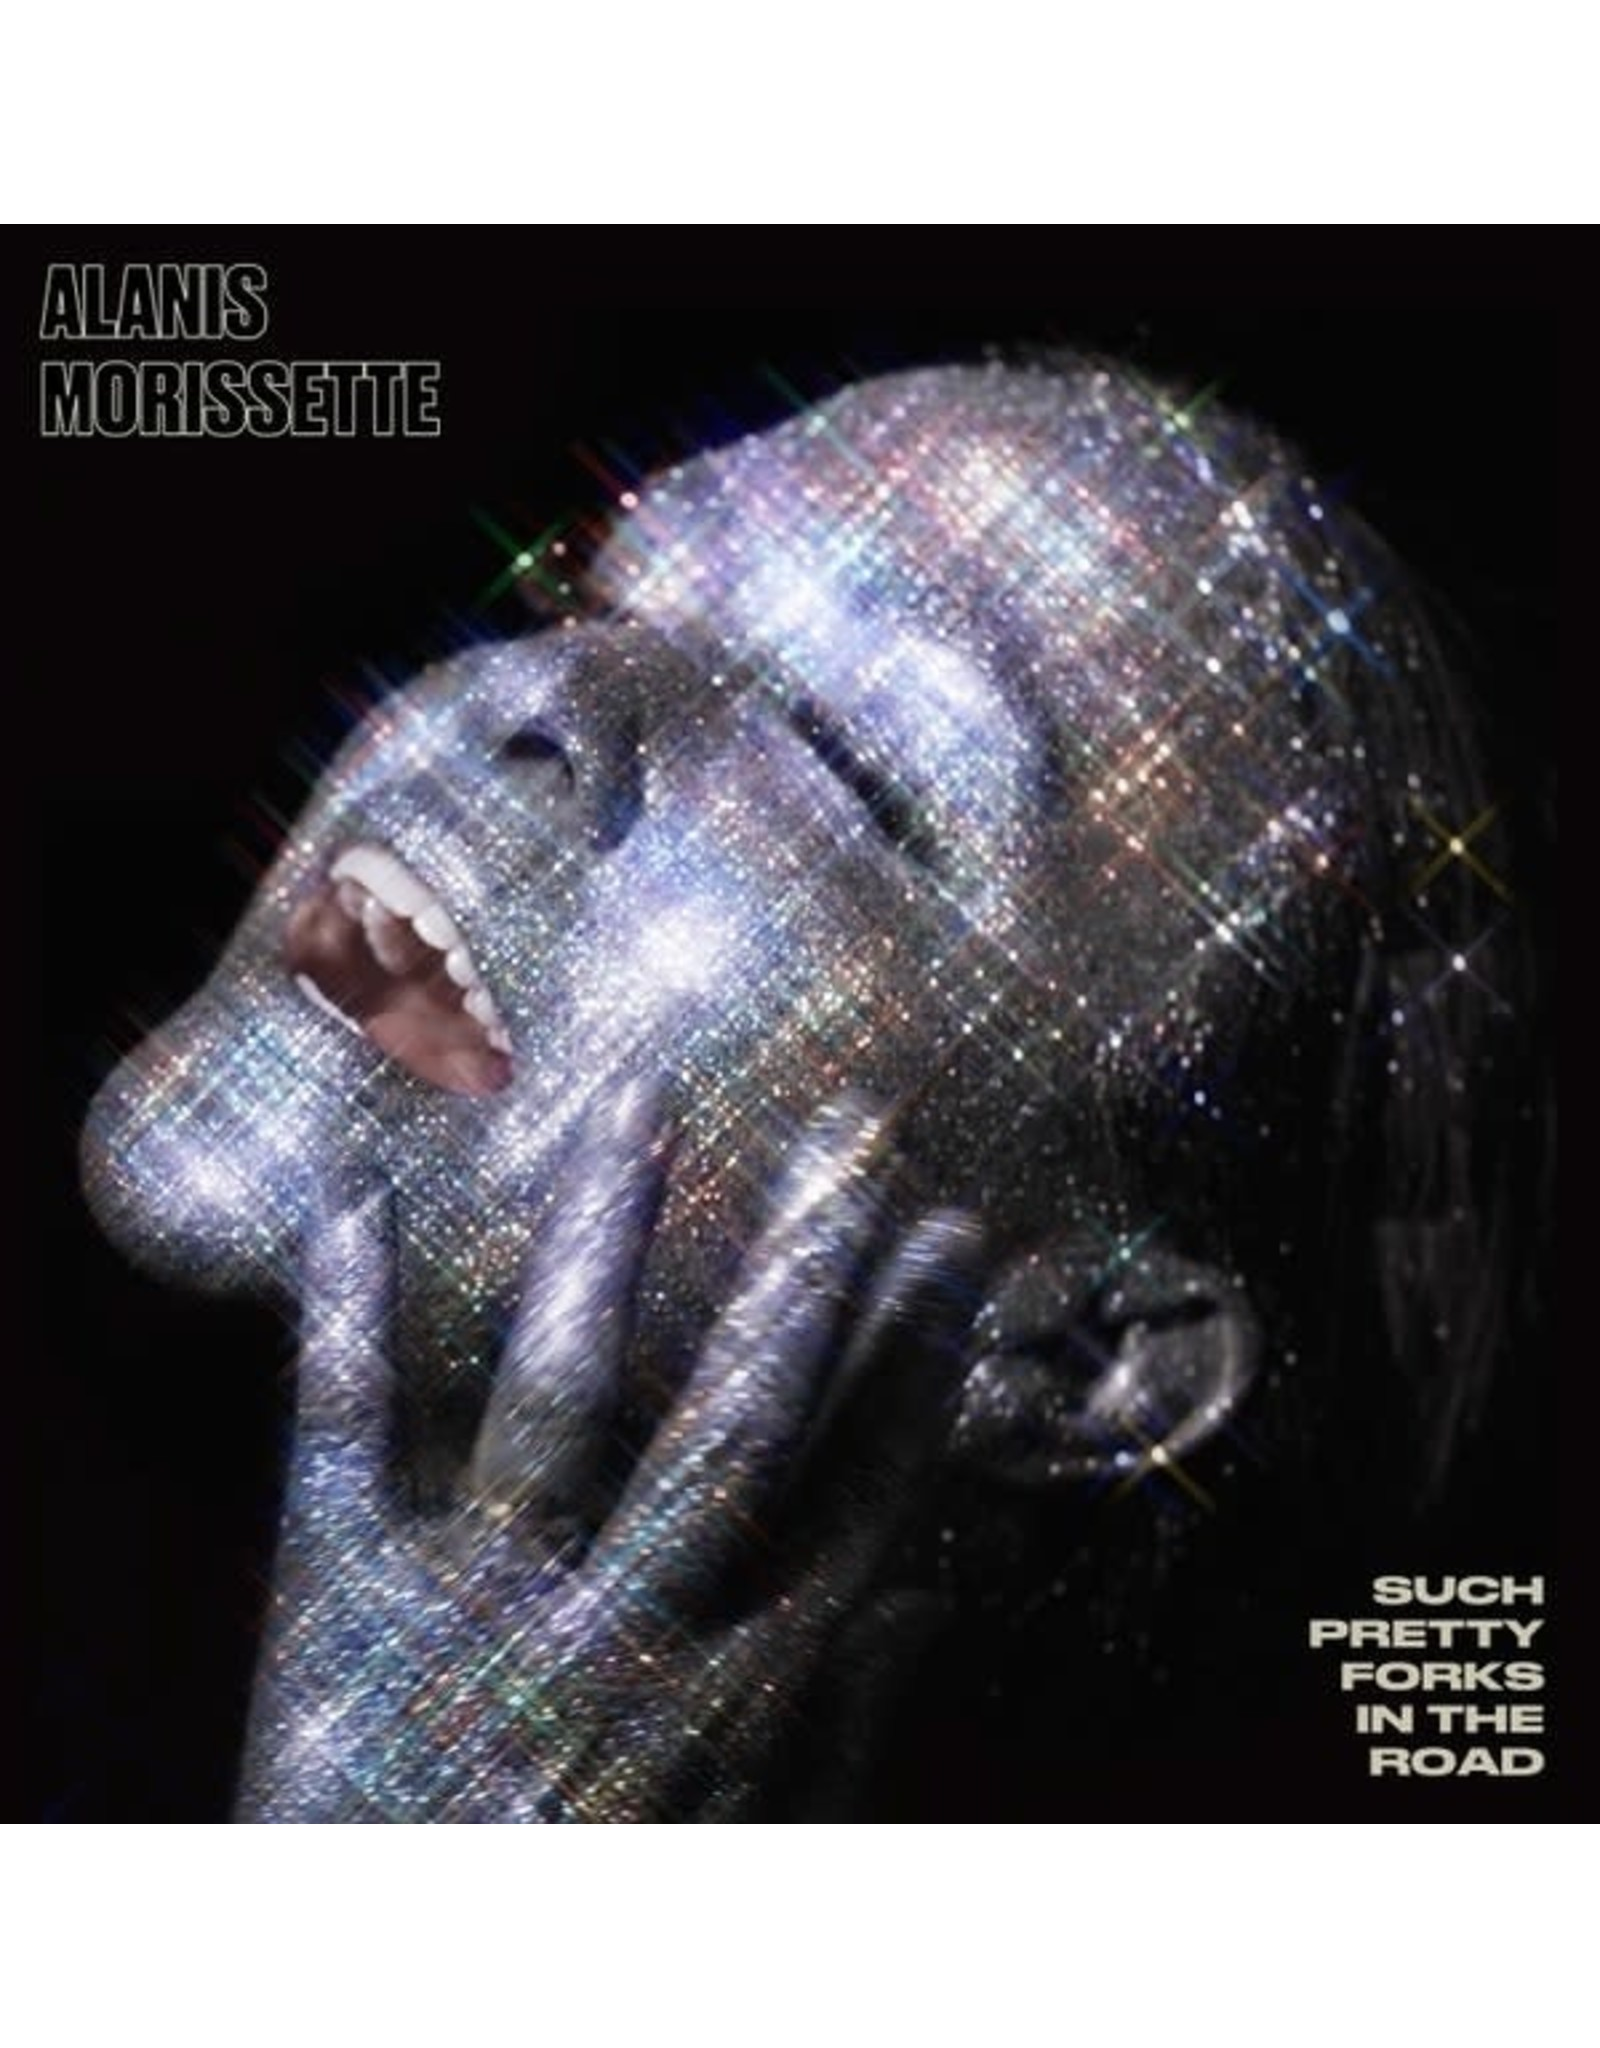 Morissette, Alanis - Such Pretty Forks in the Road LP